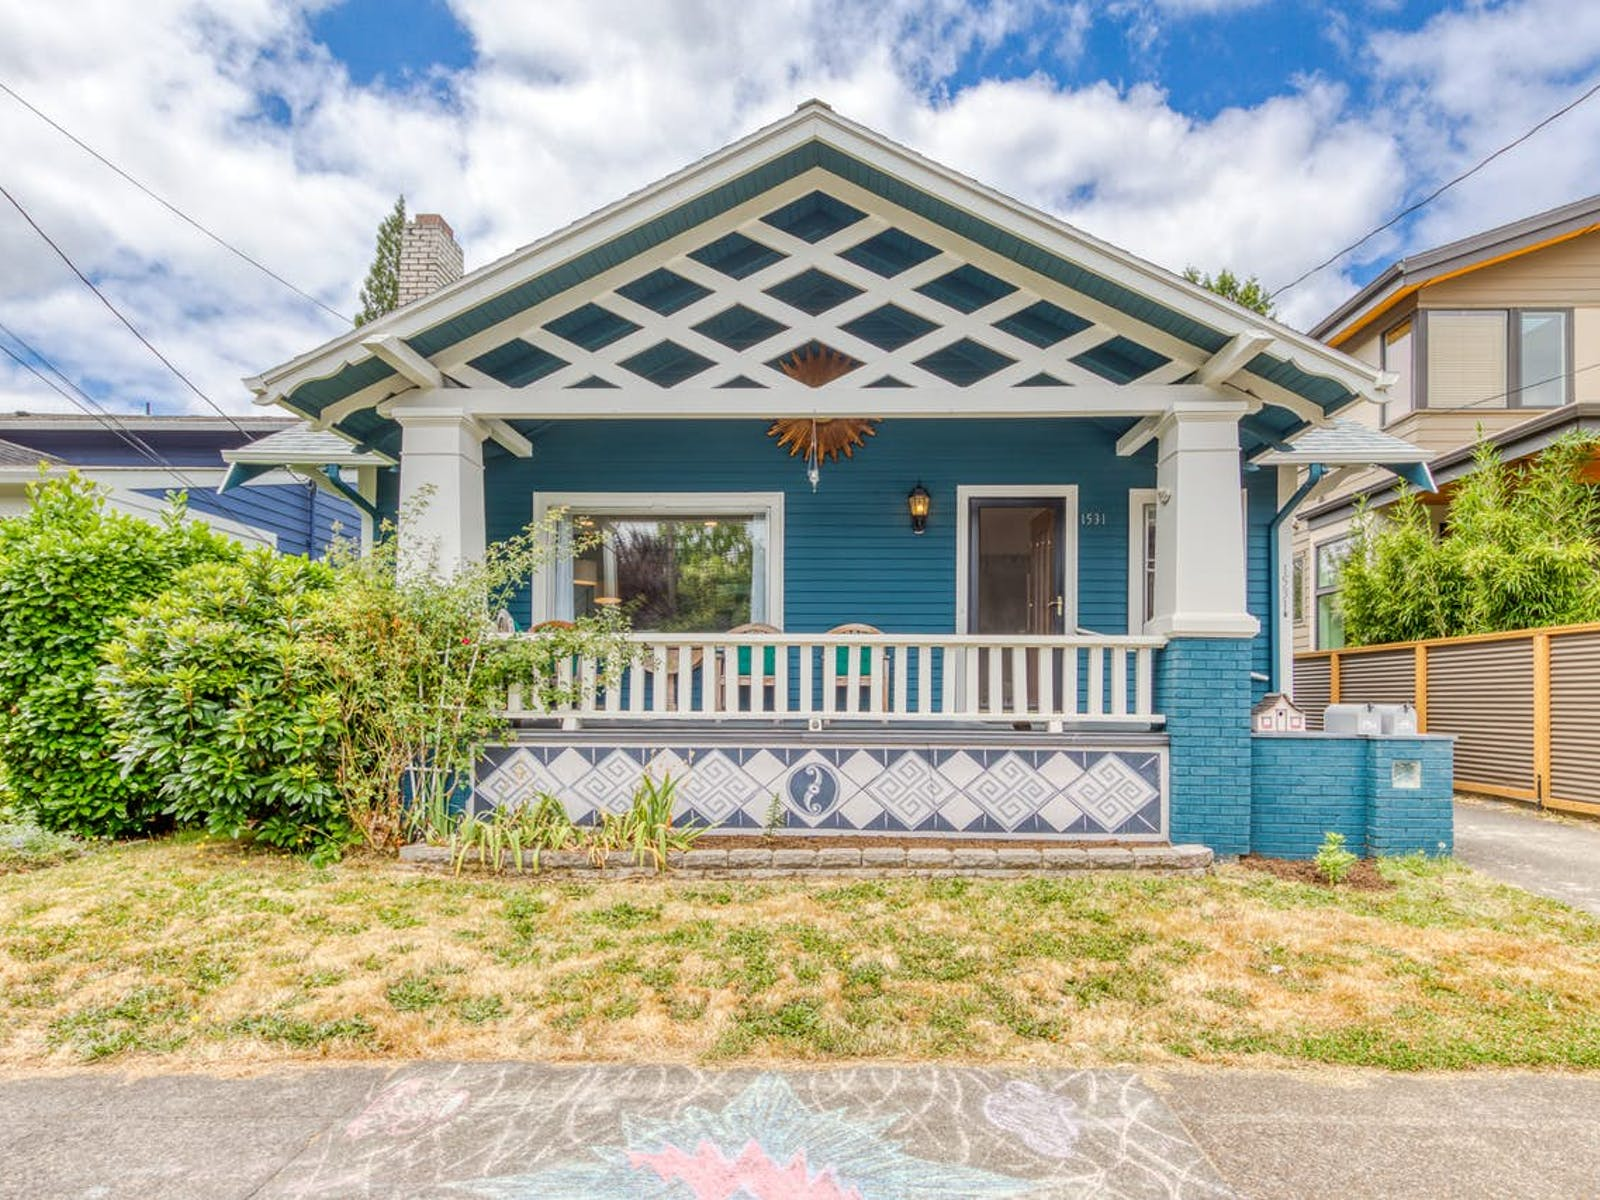 Portland, OR vacation rental front porch and exterior